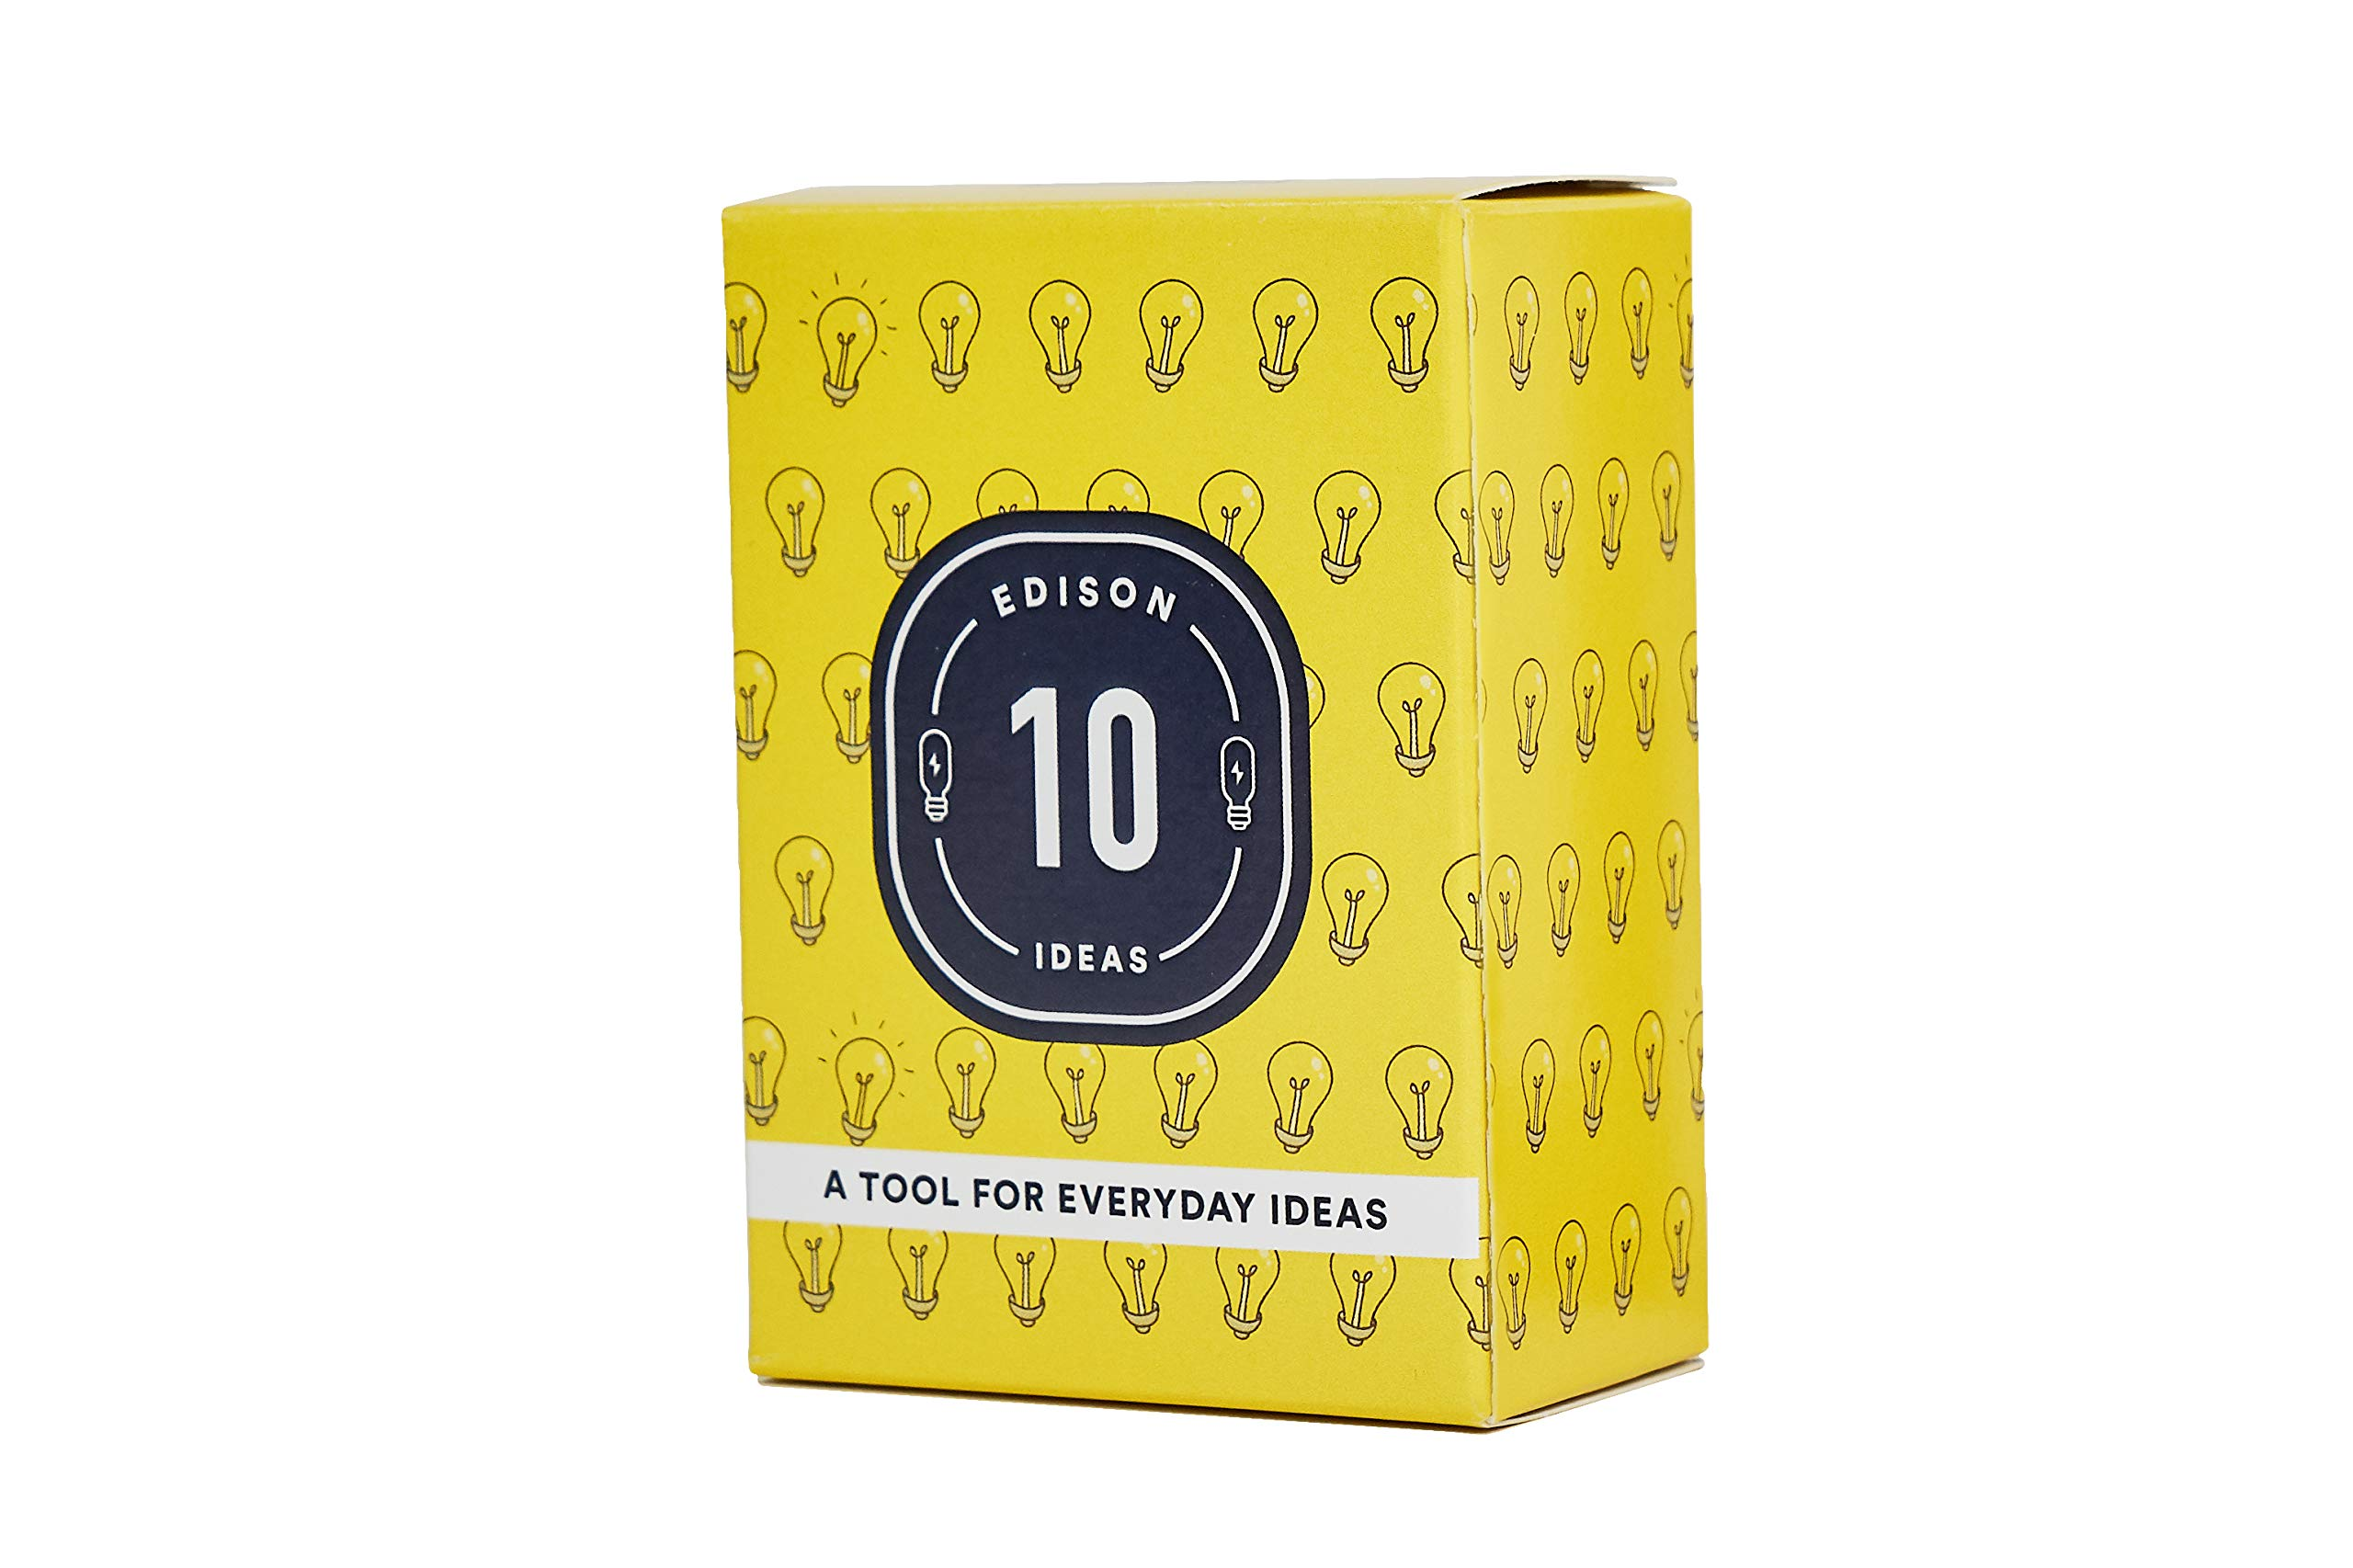 Journaling Prompt Cards - Idea Generation Set - Activity to Think of Ideas, Build Mental Muscles, Morning Routine, Become Smarter - Activity for Mindfulness and Guidance